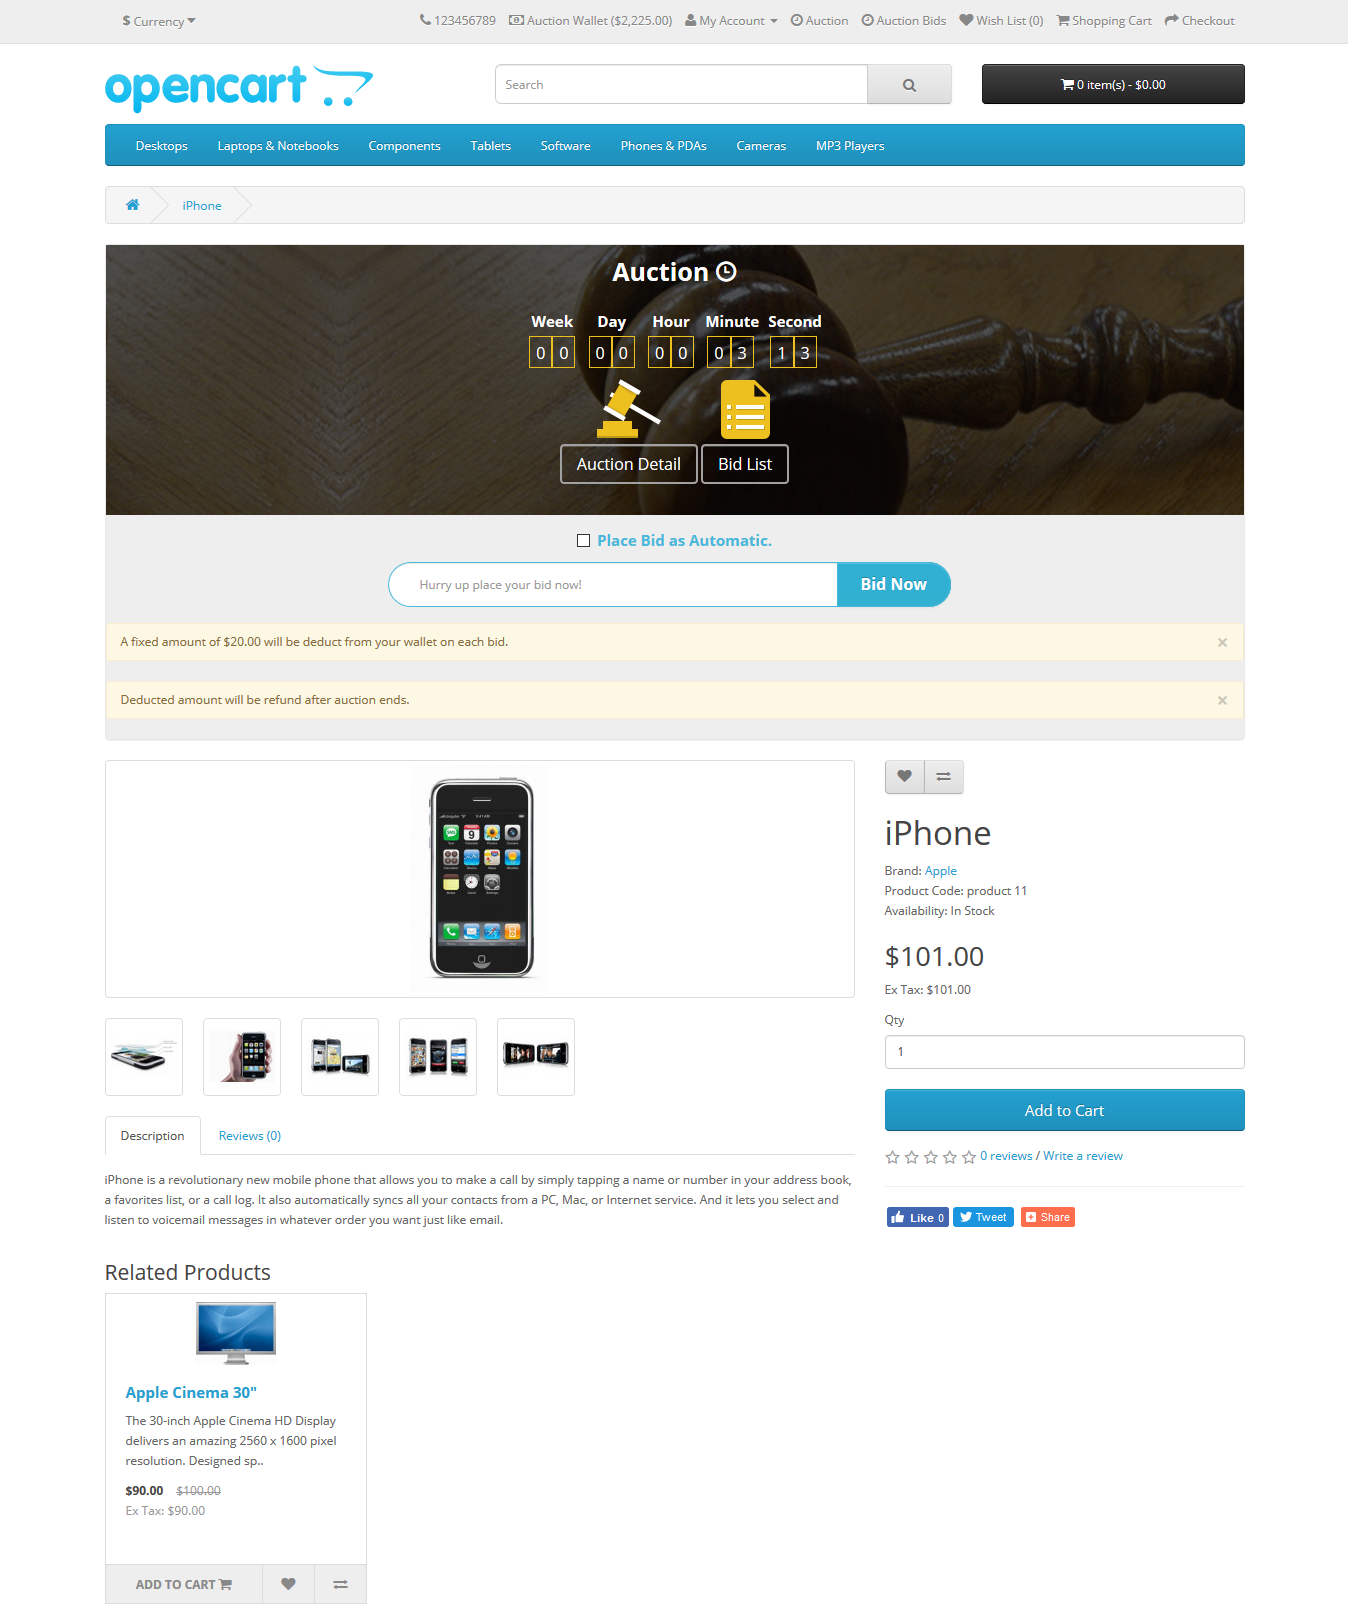 auction_page